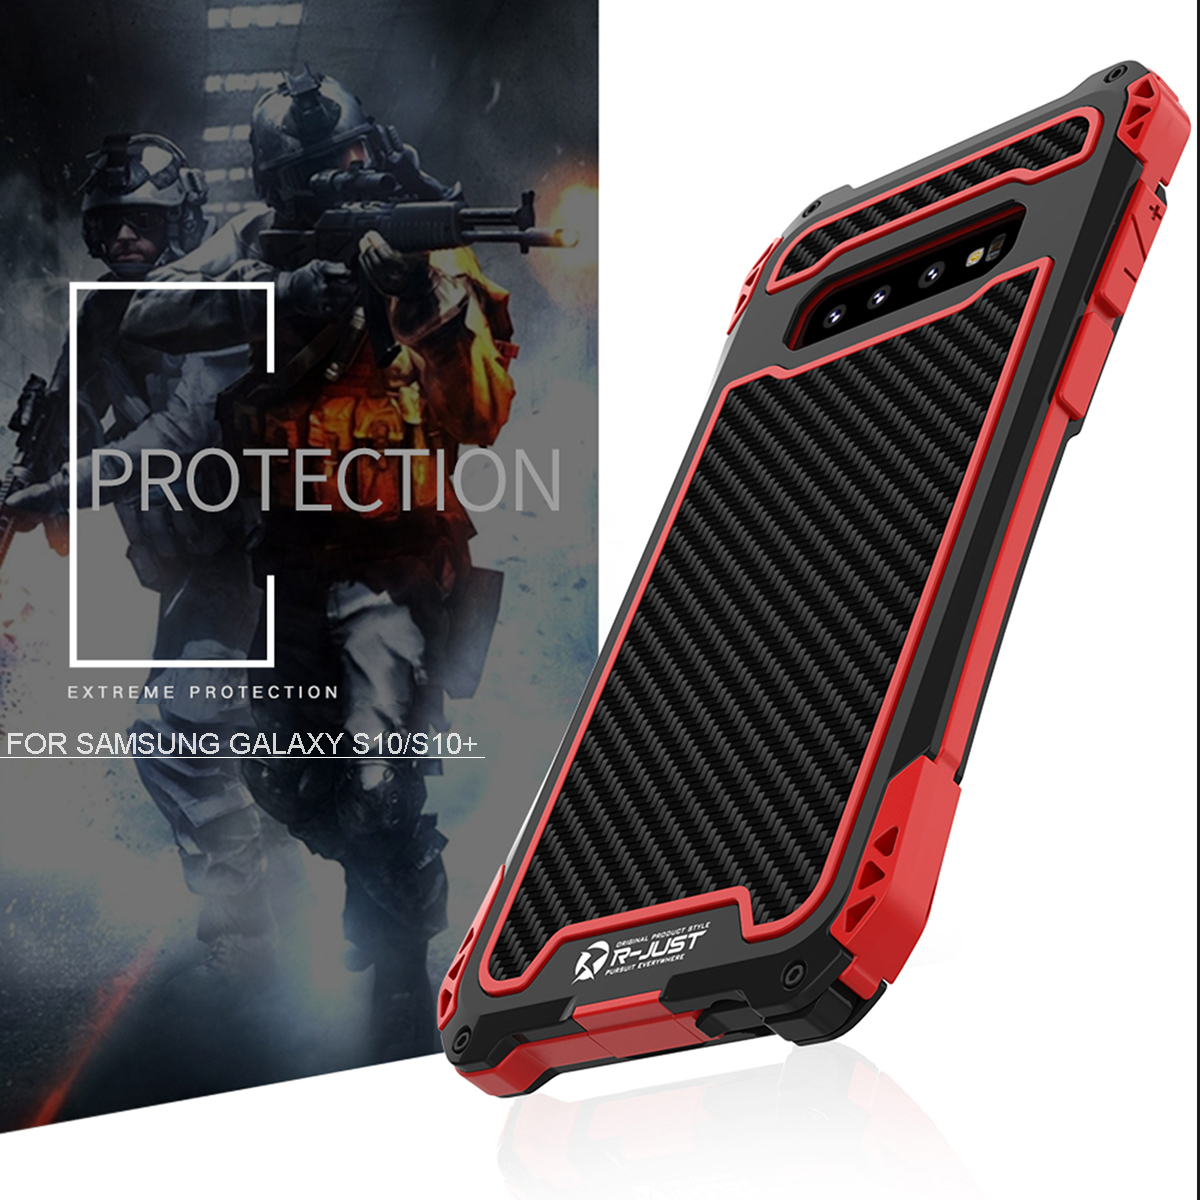 Aluminum Alloy Shockproof Snowproof Dirtproof Protective Case For Samsung Galaxy S10 Plus 6.4 Inch 2019